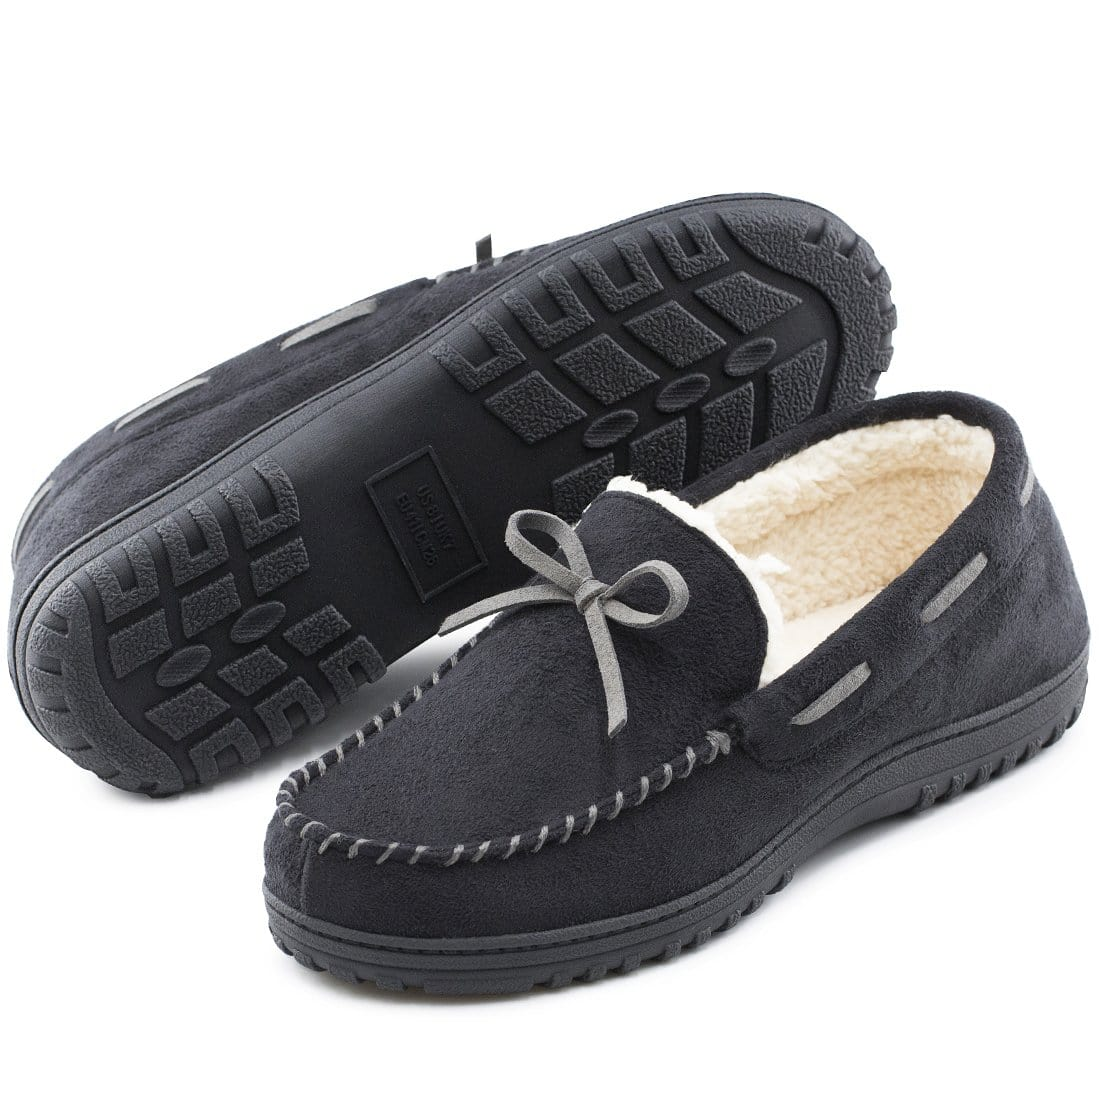 Men's VeraCosy Faux Wool Lined Moccasins